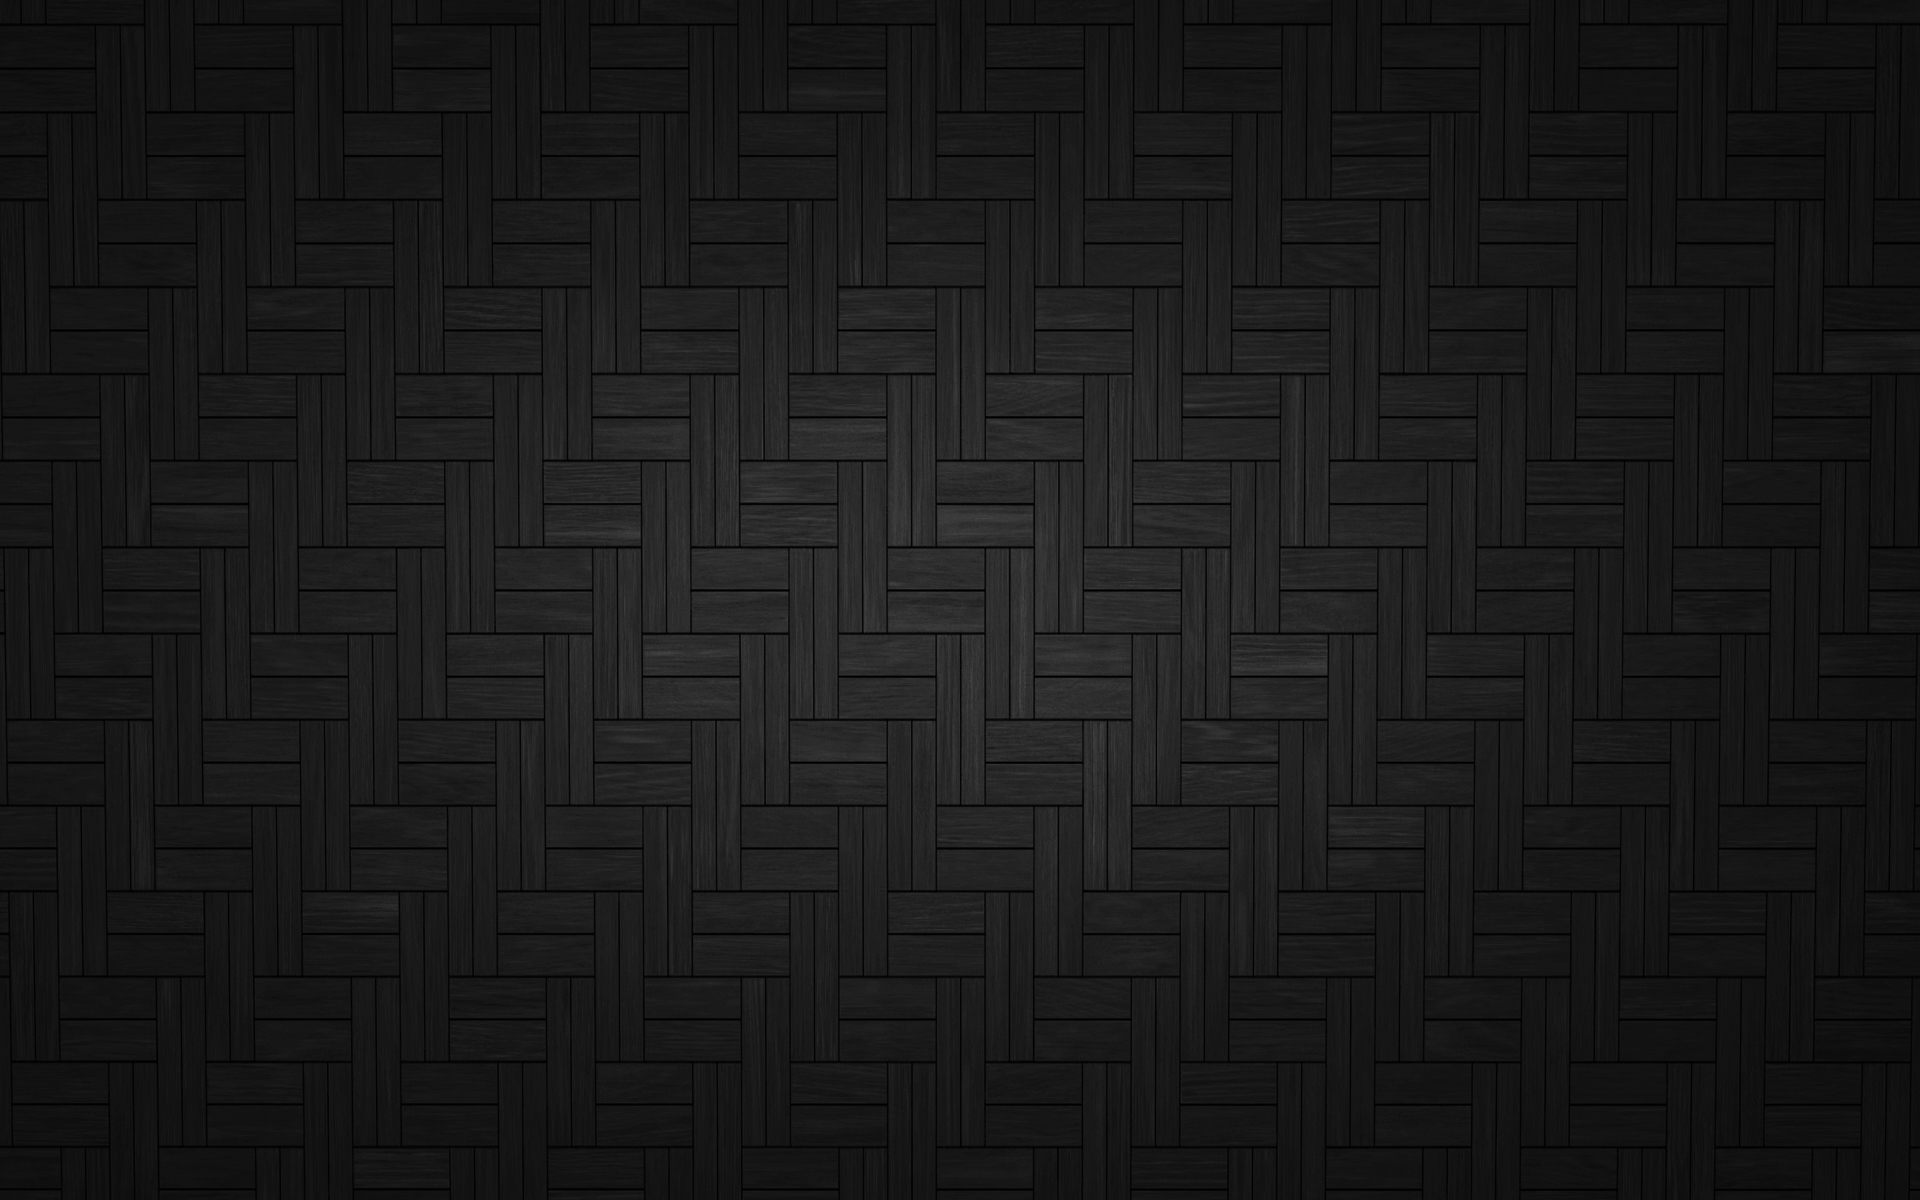 Black Wallpaper 10 1920x1200